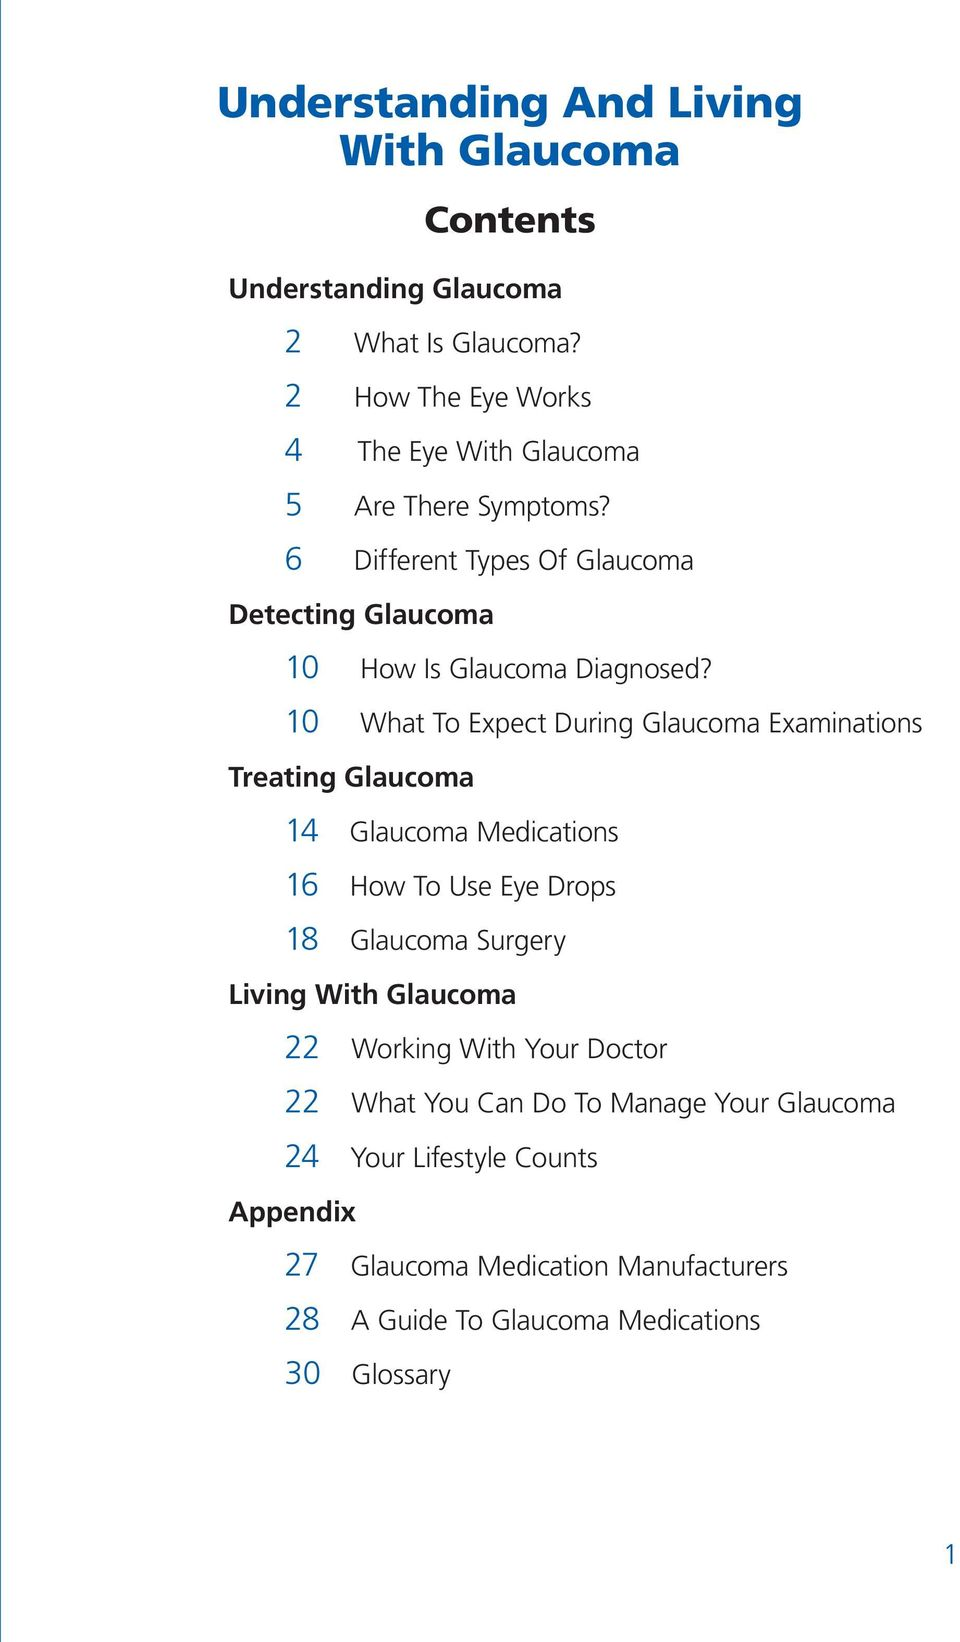 10 What To Expect During Glaucoma Examinations Treating Glaucoma 14 Glaucoma Medications 16 How To Use Eye Drops 18 Glaucoma Surgery Living With